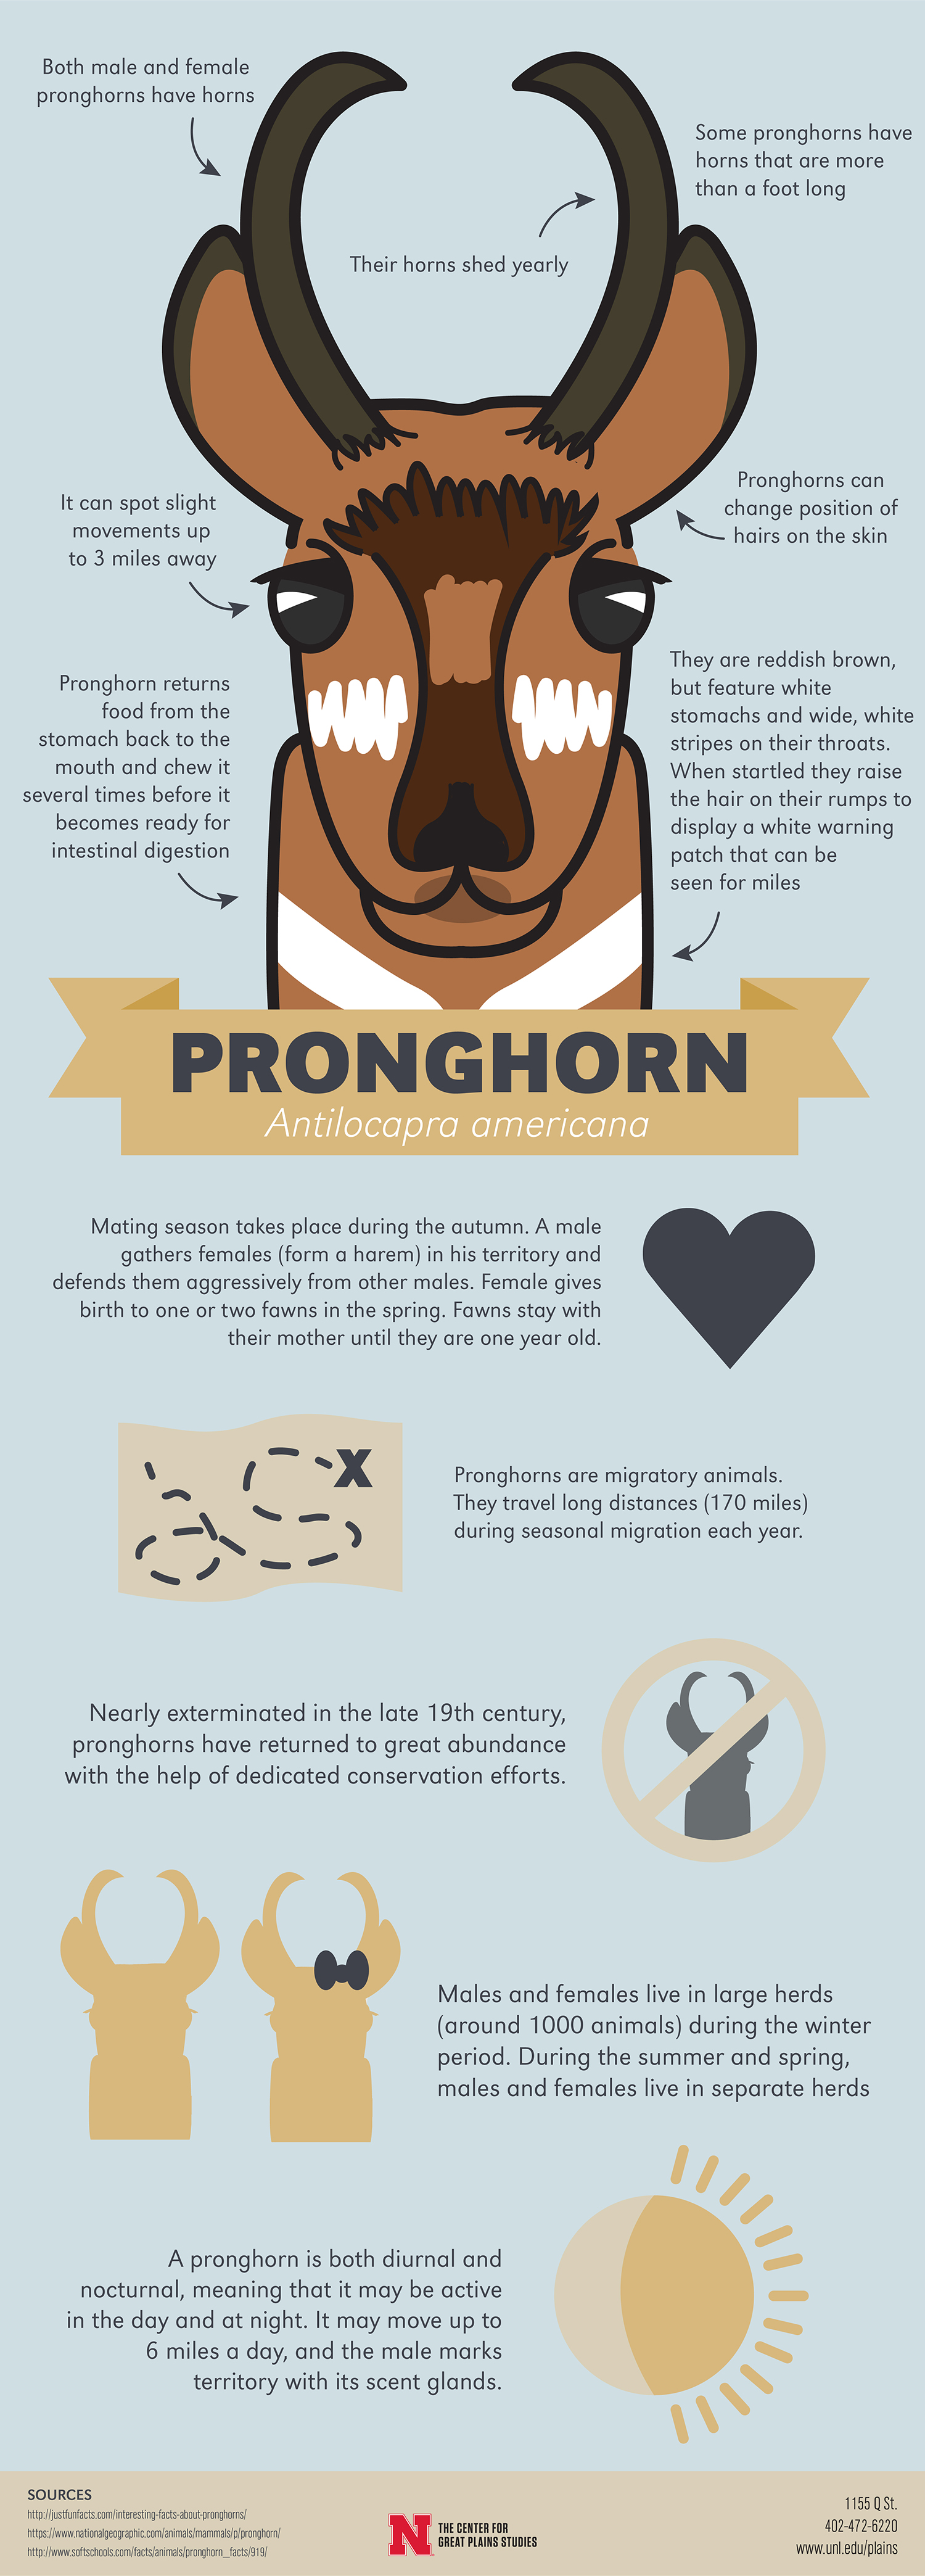 Pronghorn infographic